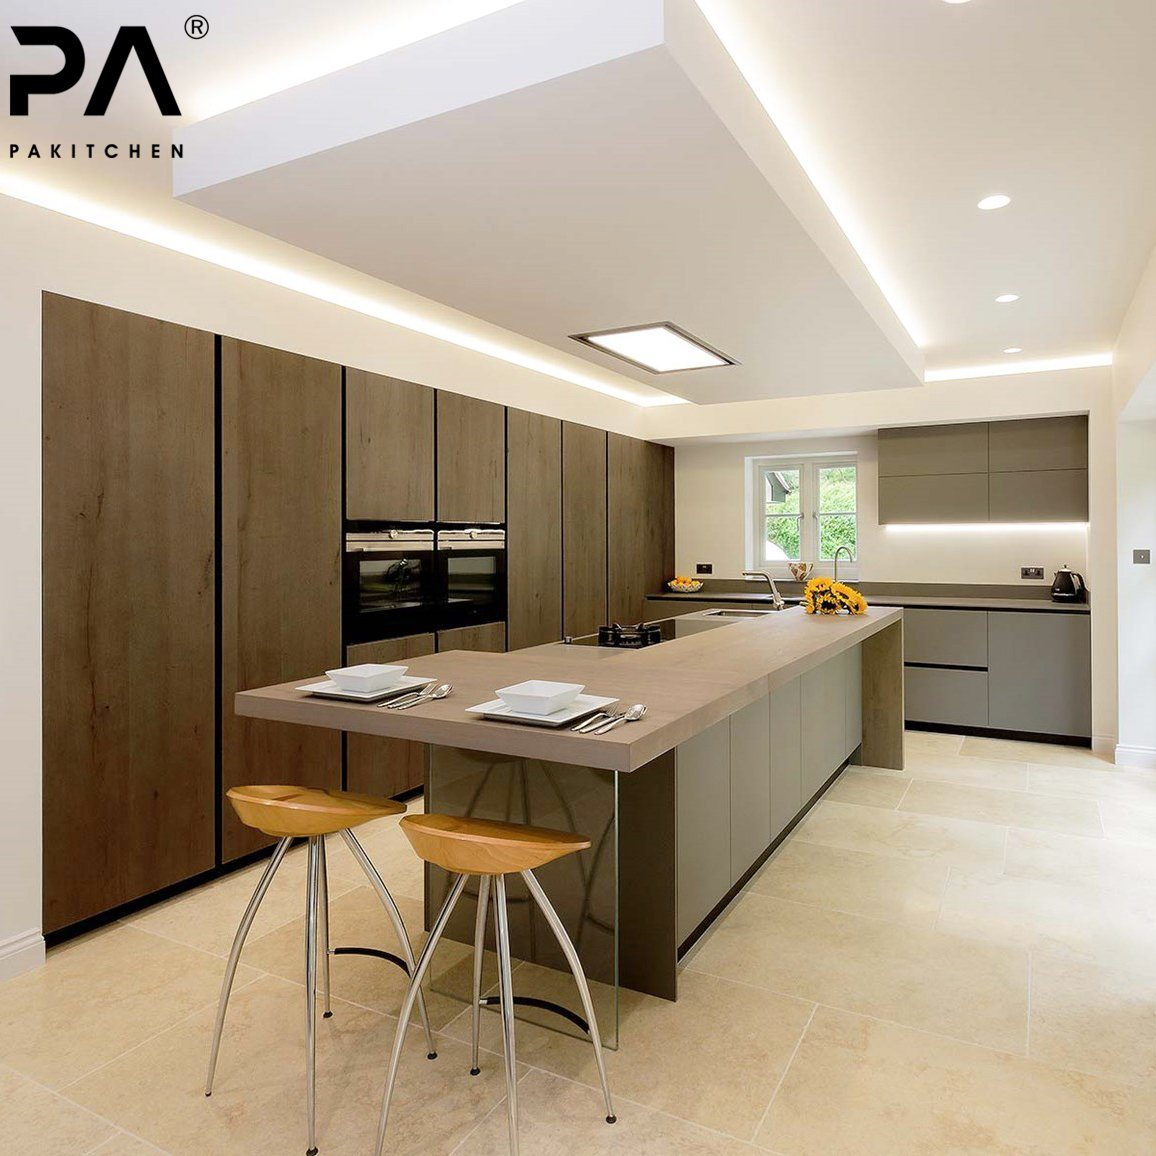 Pvc Kitchen Cabinet Factory Pvc Kitchen Cabinet Factory Manufacturers Suppliers Made In China Com